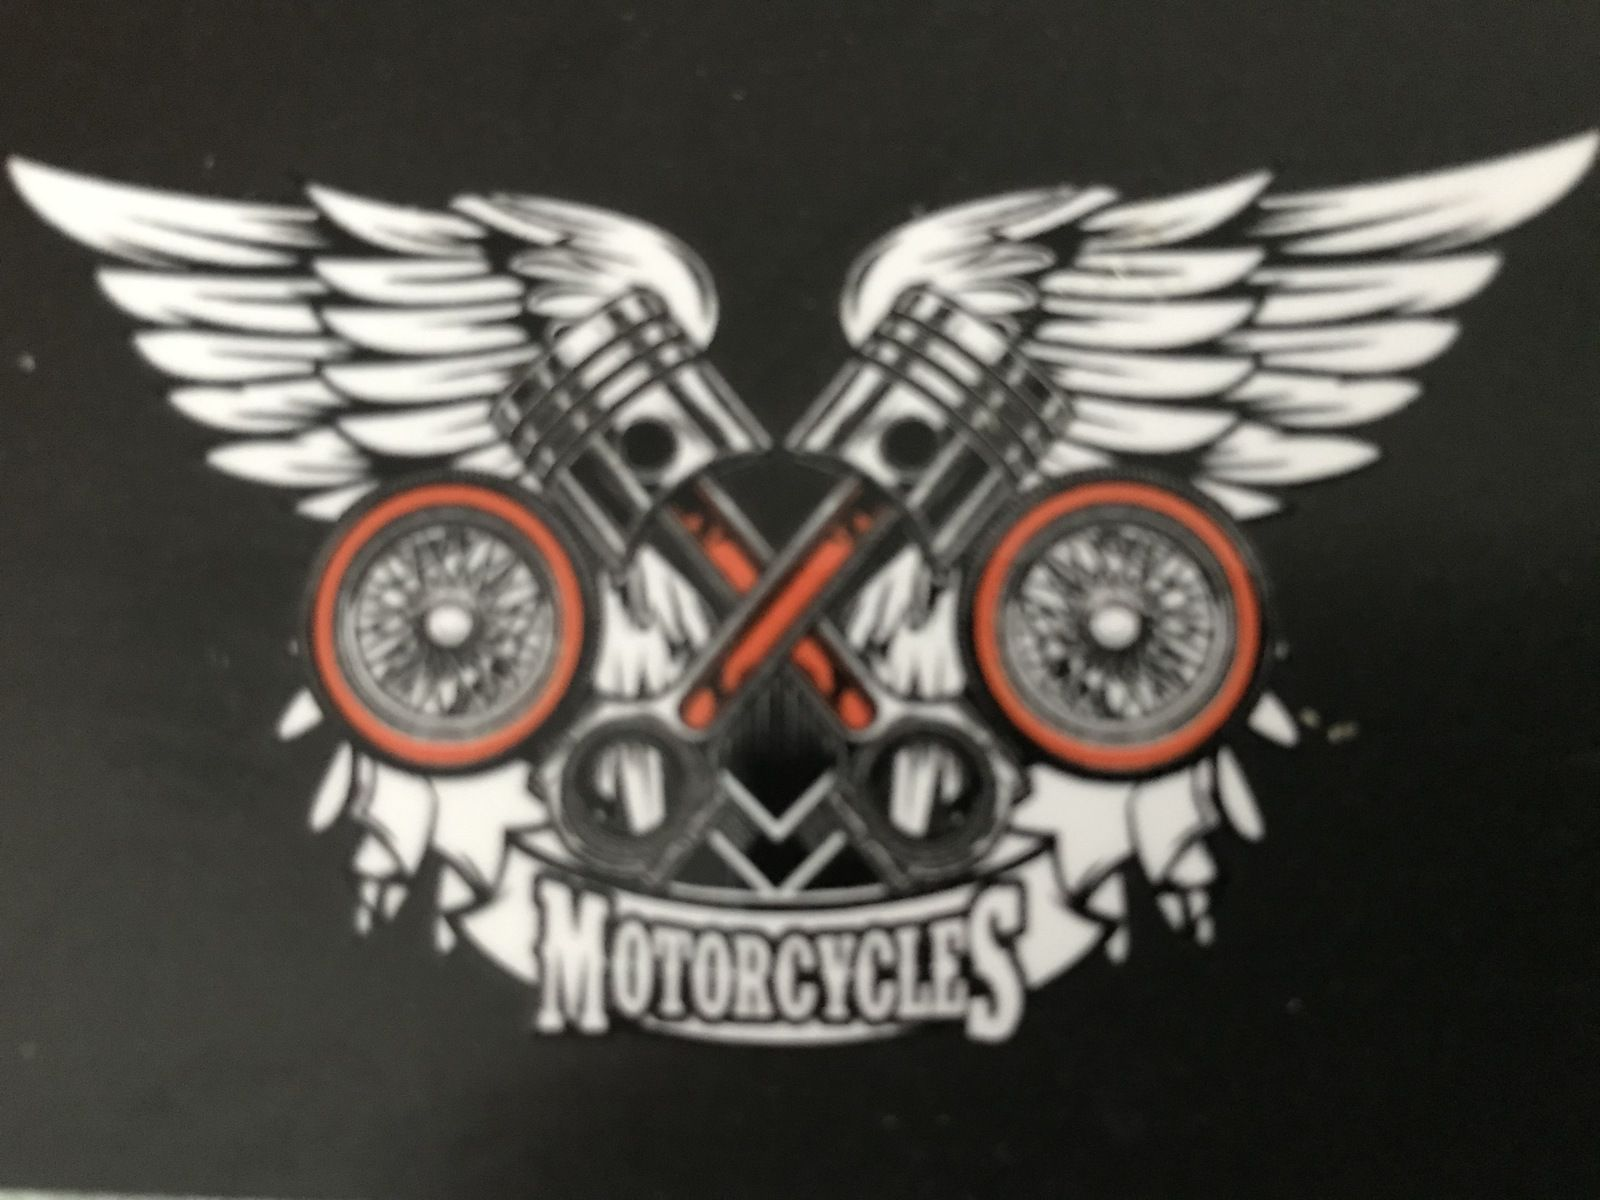 Oxo Motorcycles